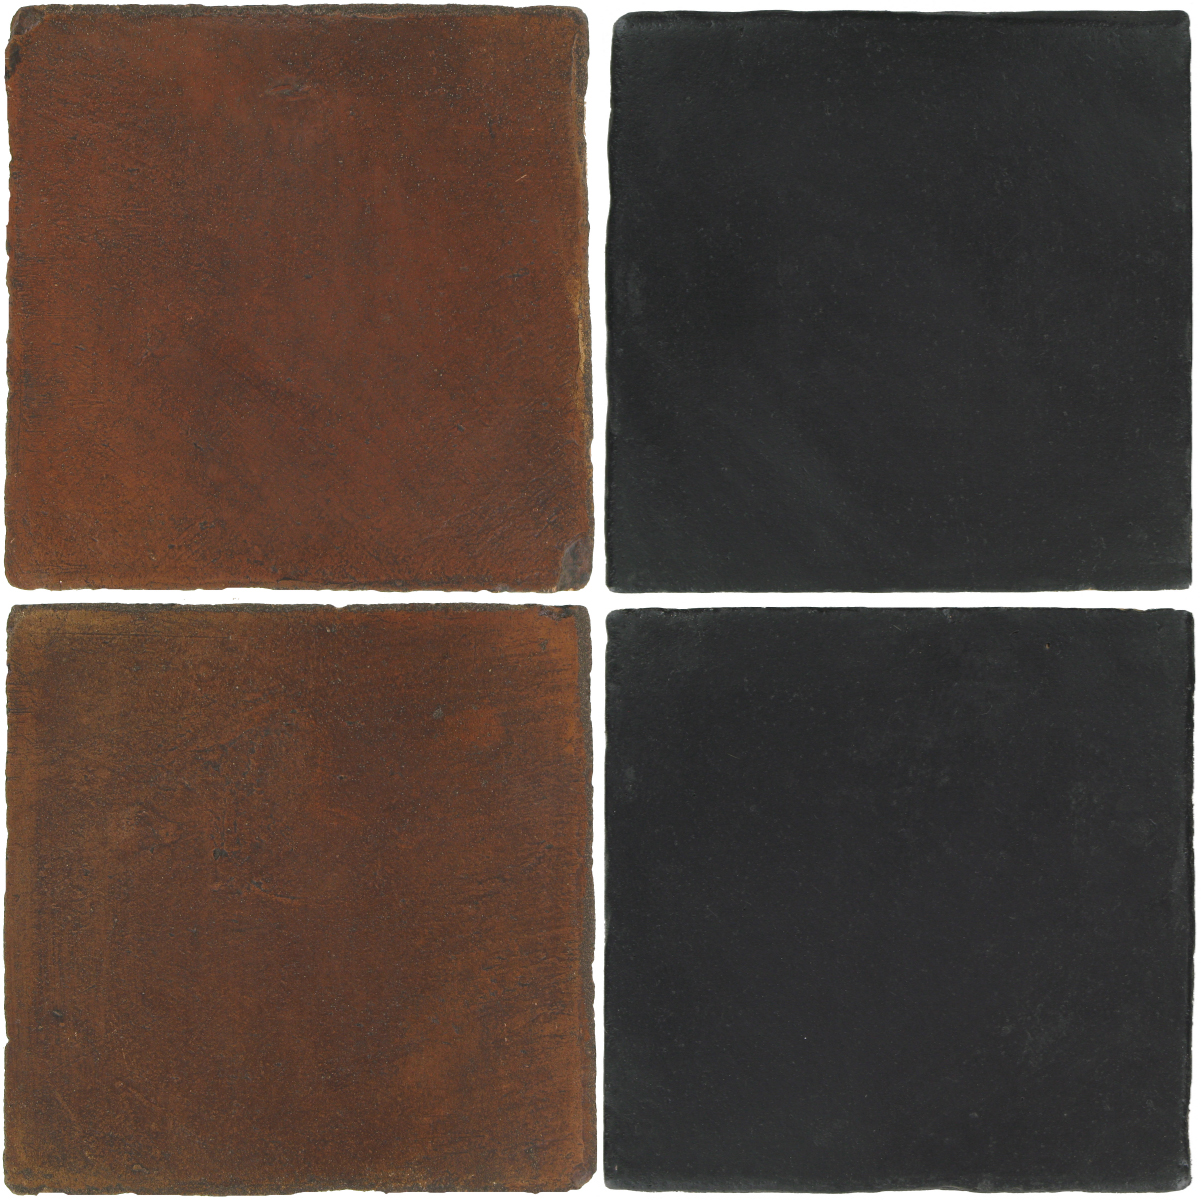 Pedralbes Antique Terracotta  2 Color Combinations  OHS-PSOW Old World + OHS-PGCB Carbon Black